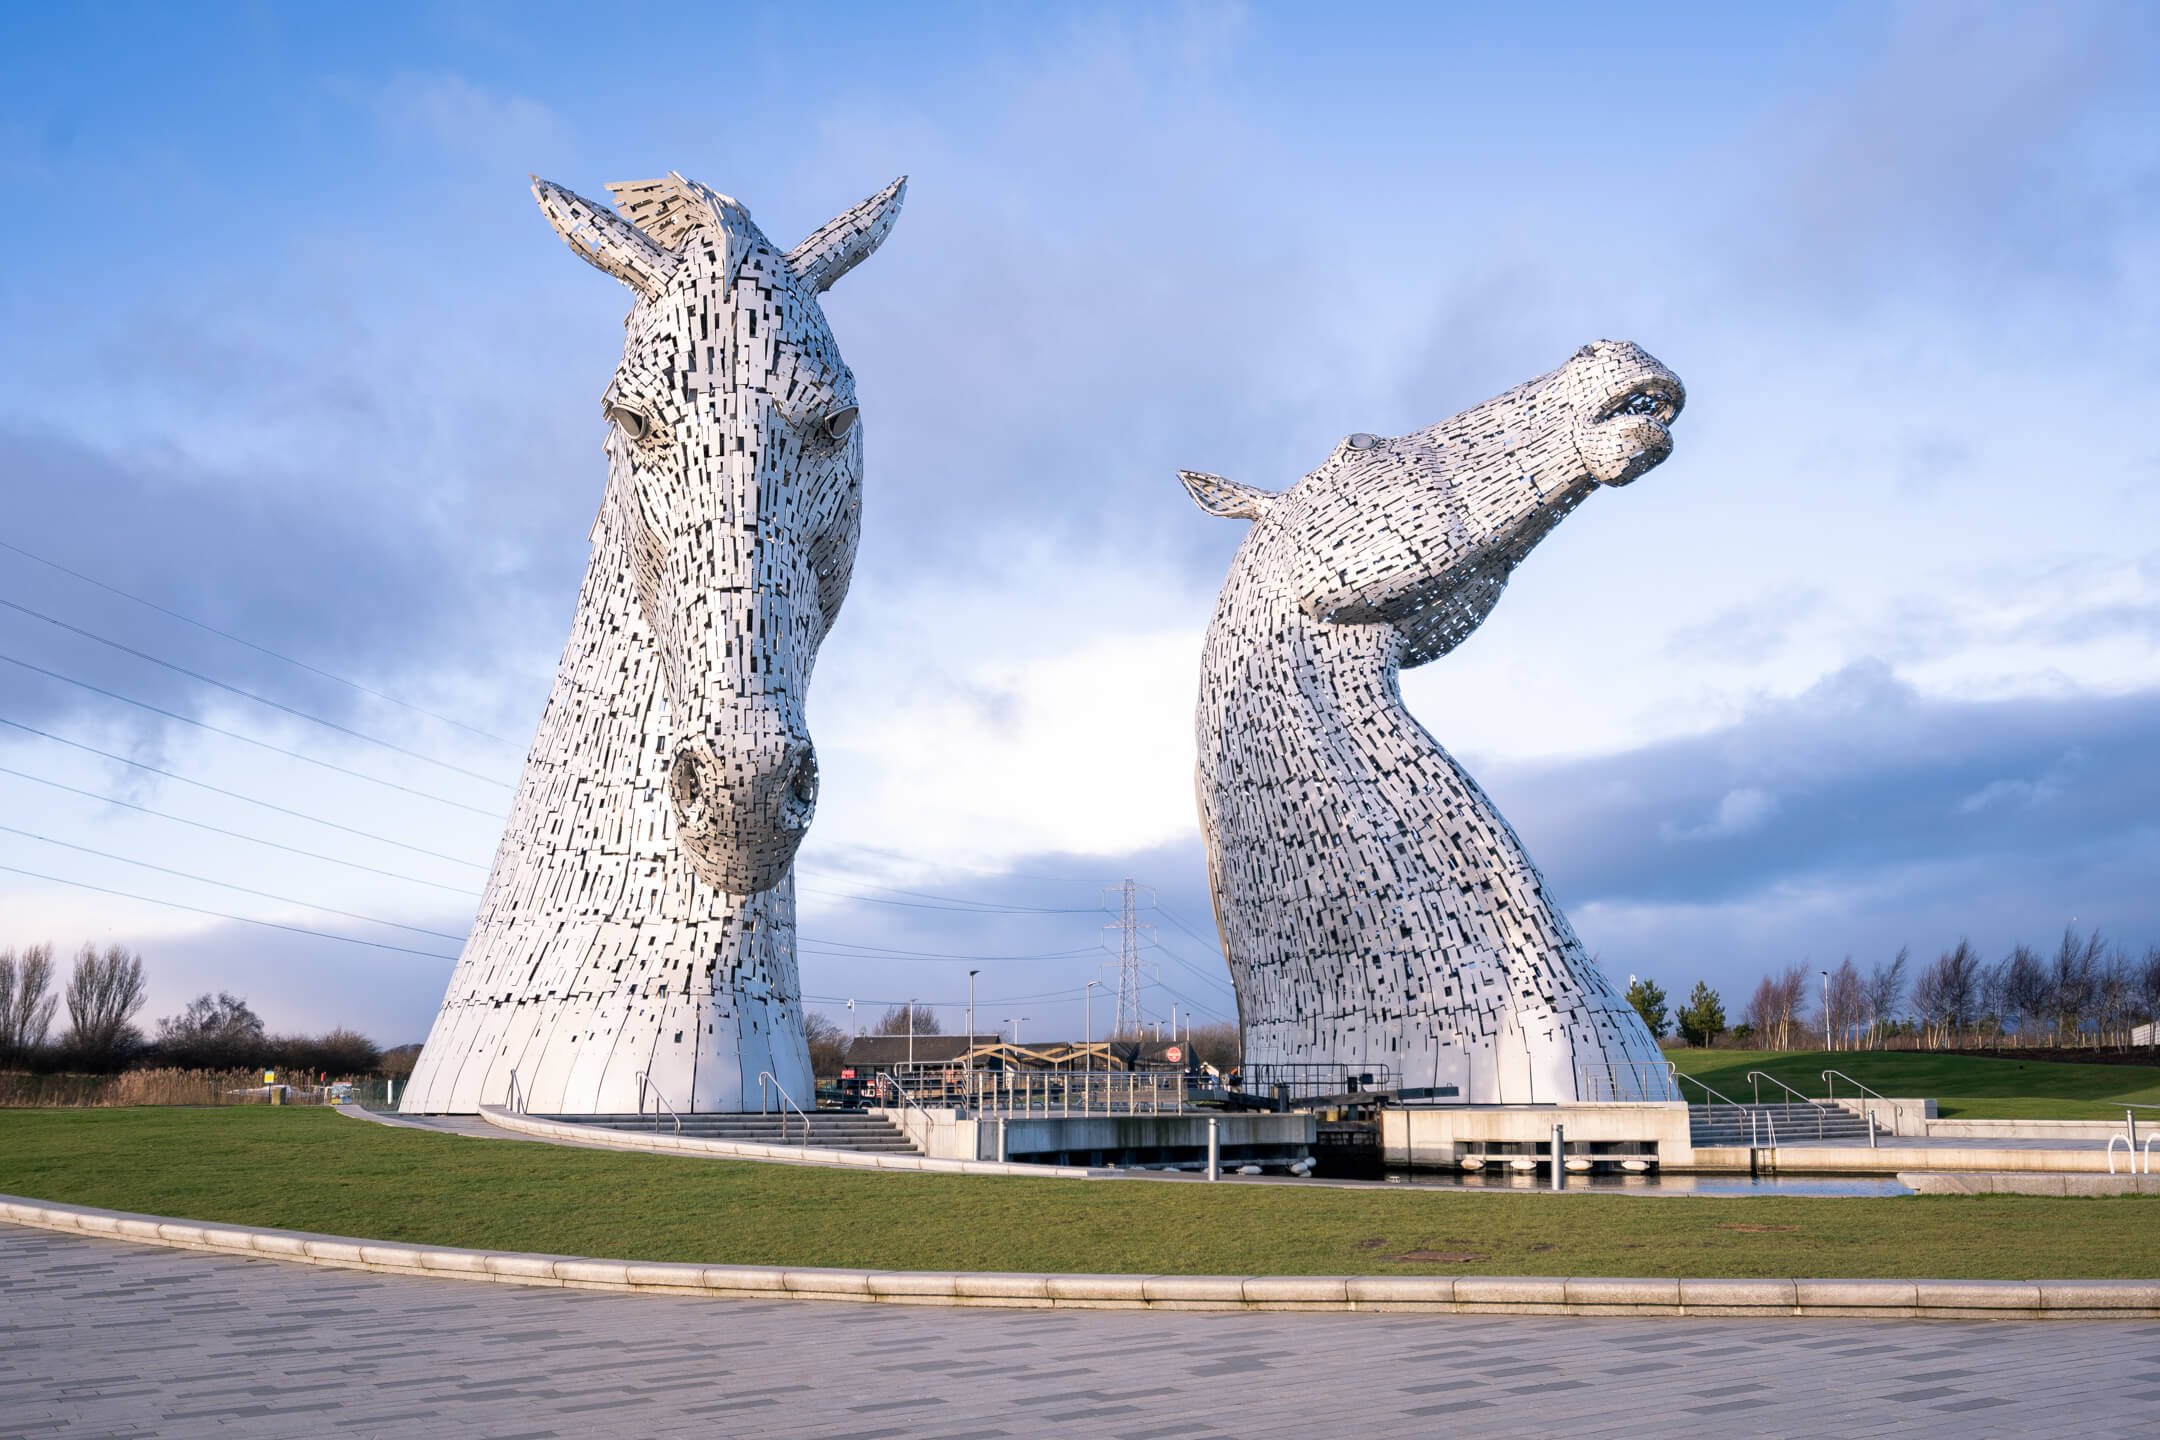 The Kelpies, Scotland - Sculpture by Andy Scott